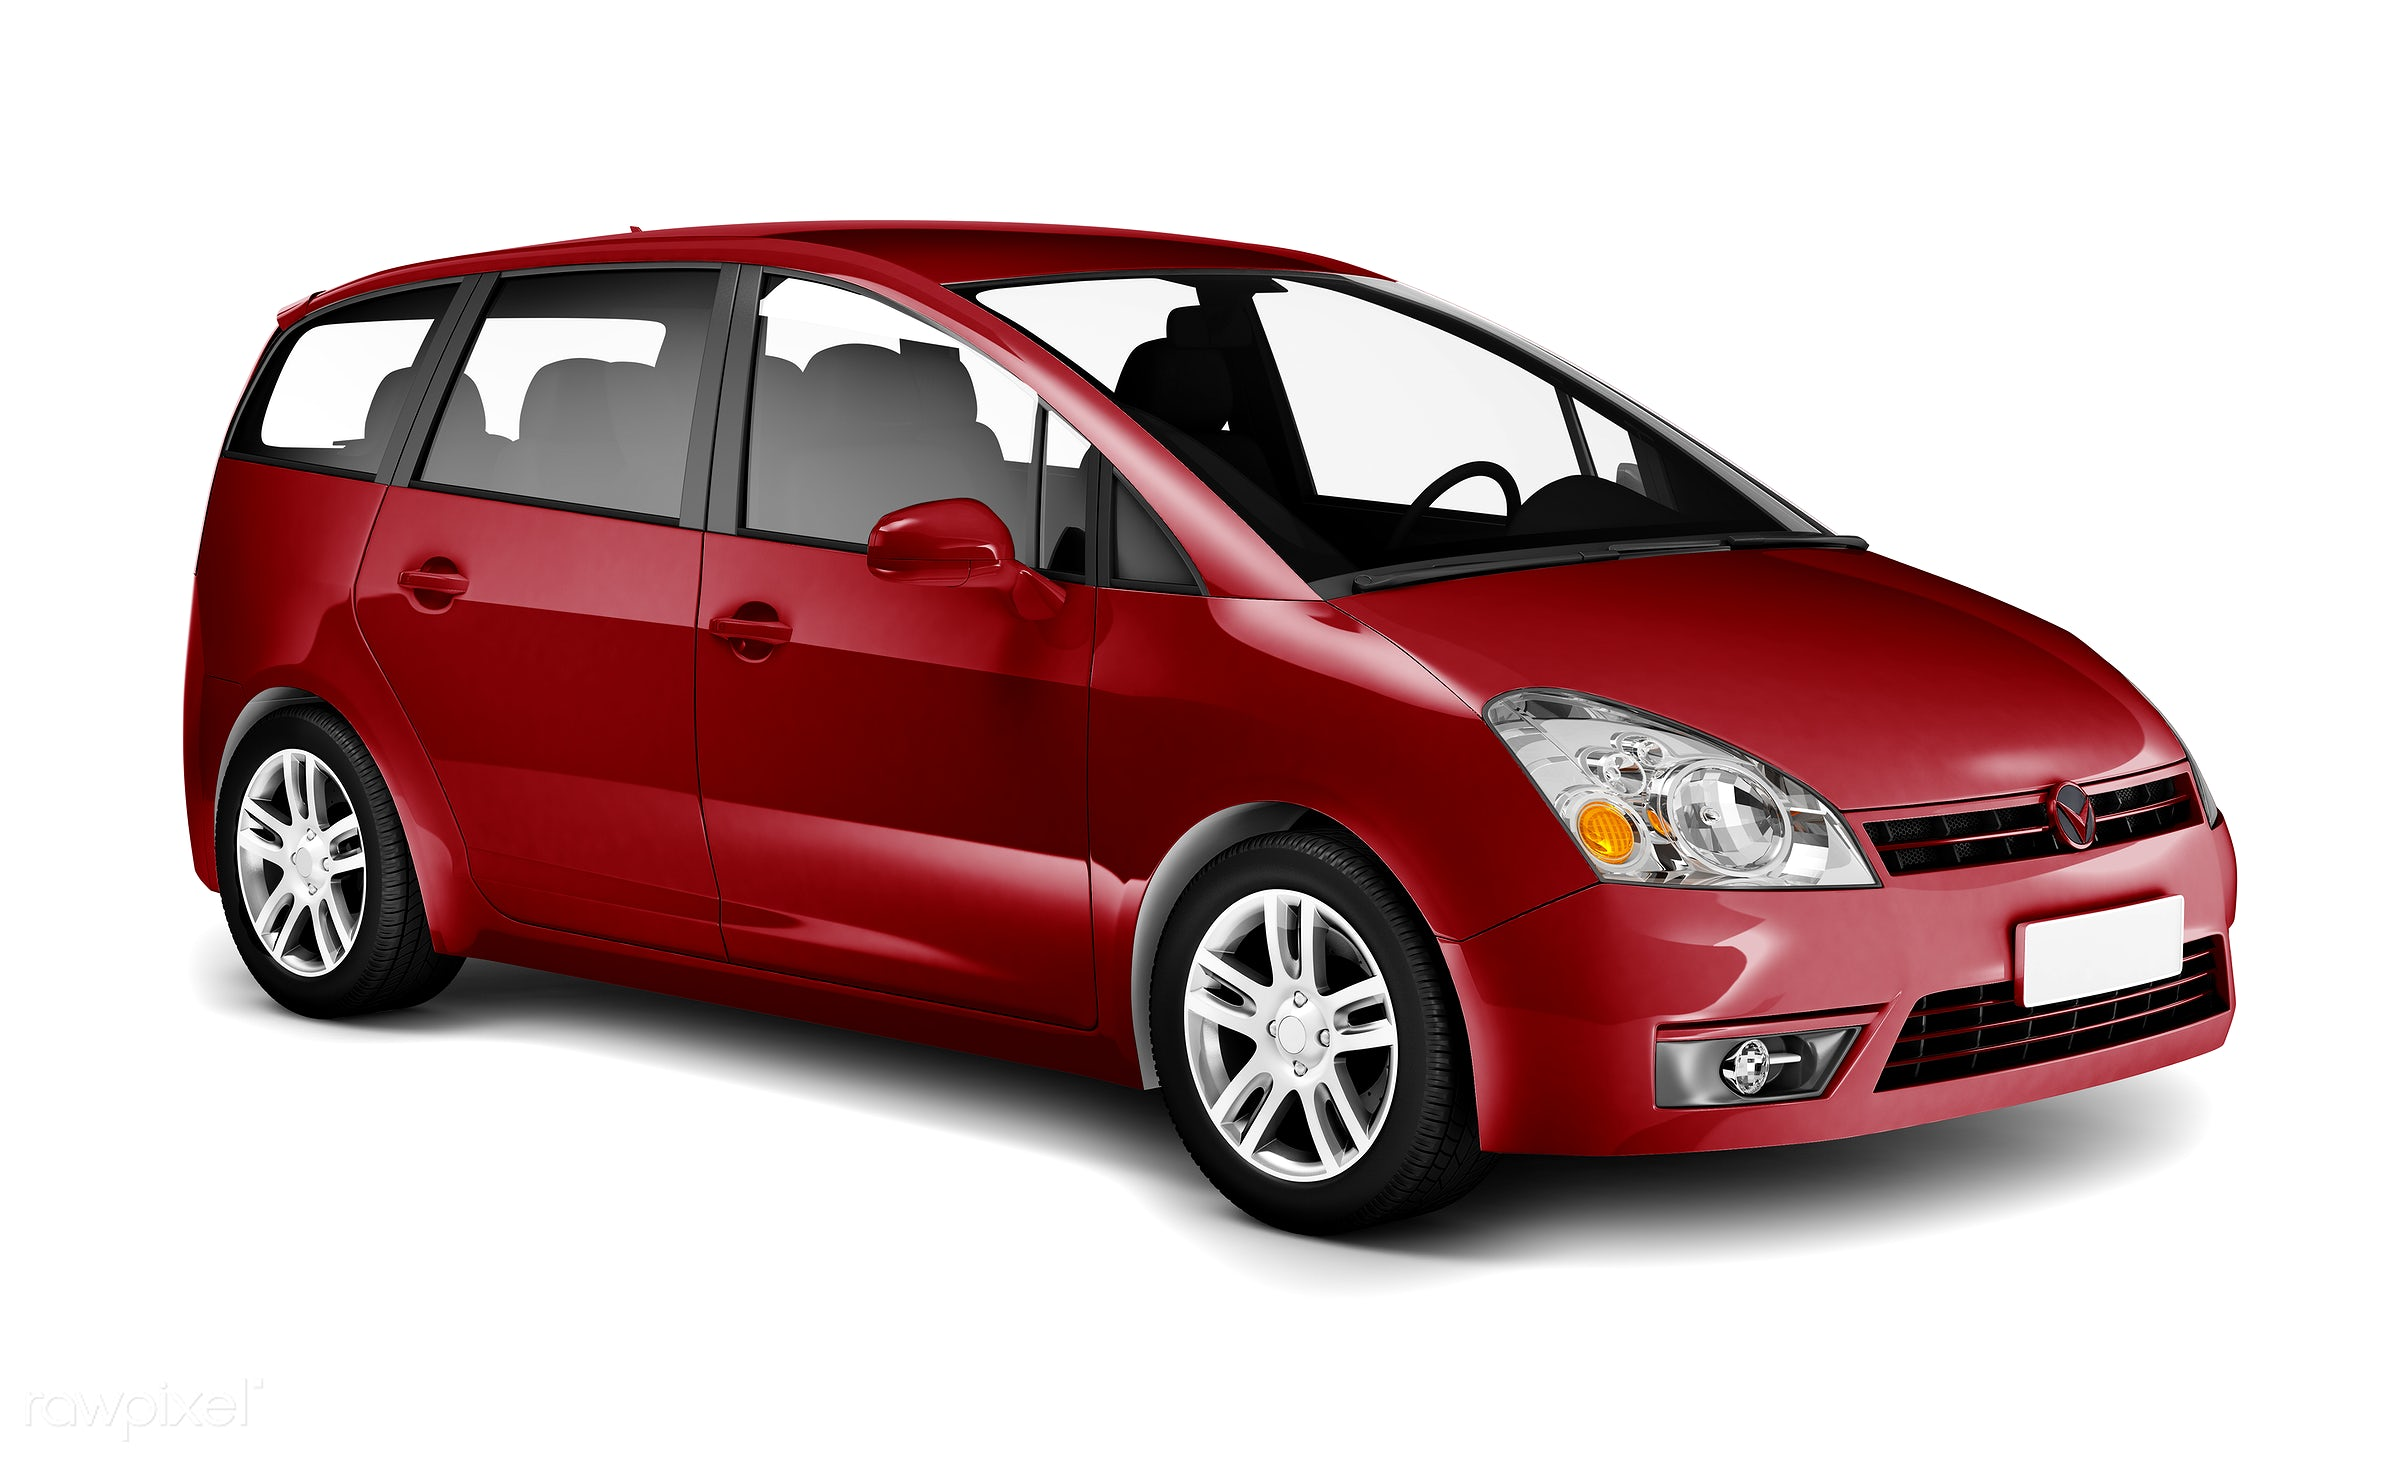 Three dimensional image of red car - car, van, 3d, automobile, automotive, brandless, concept car, graphic, holiday,...